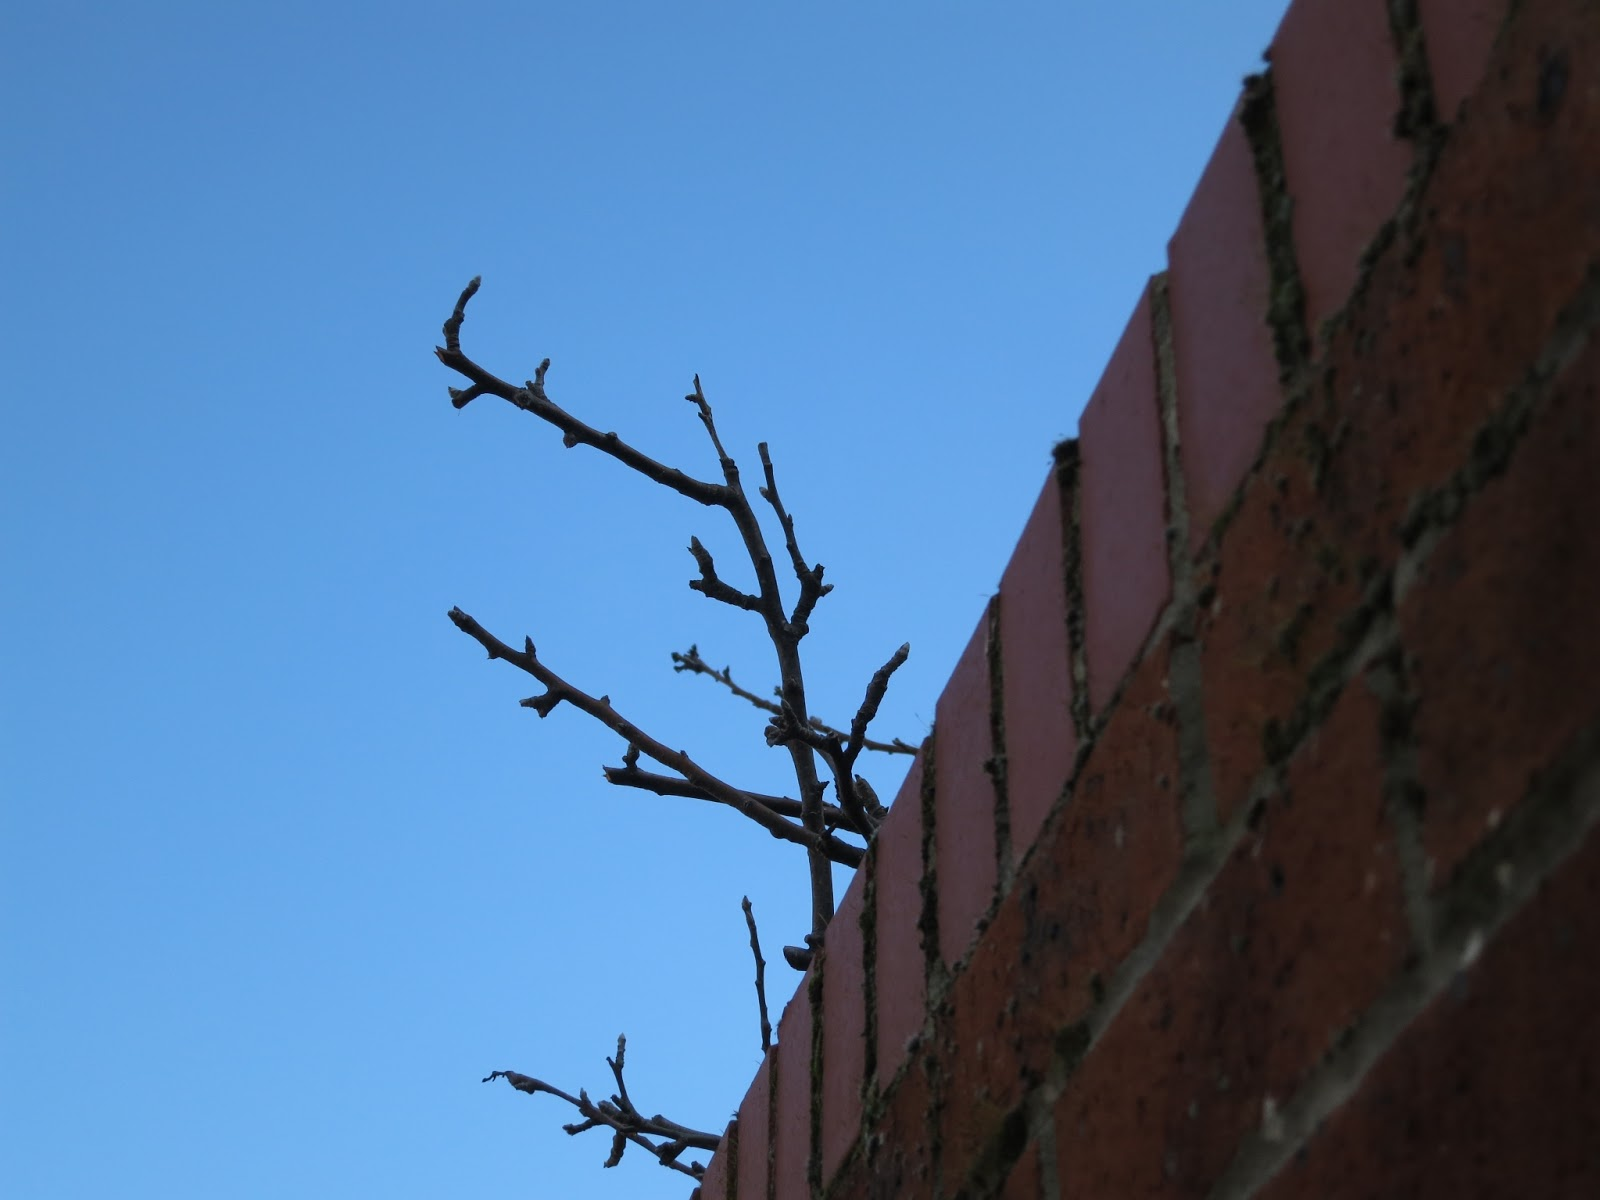 Apple tree twigs poking over brick wall against deep blue sky.